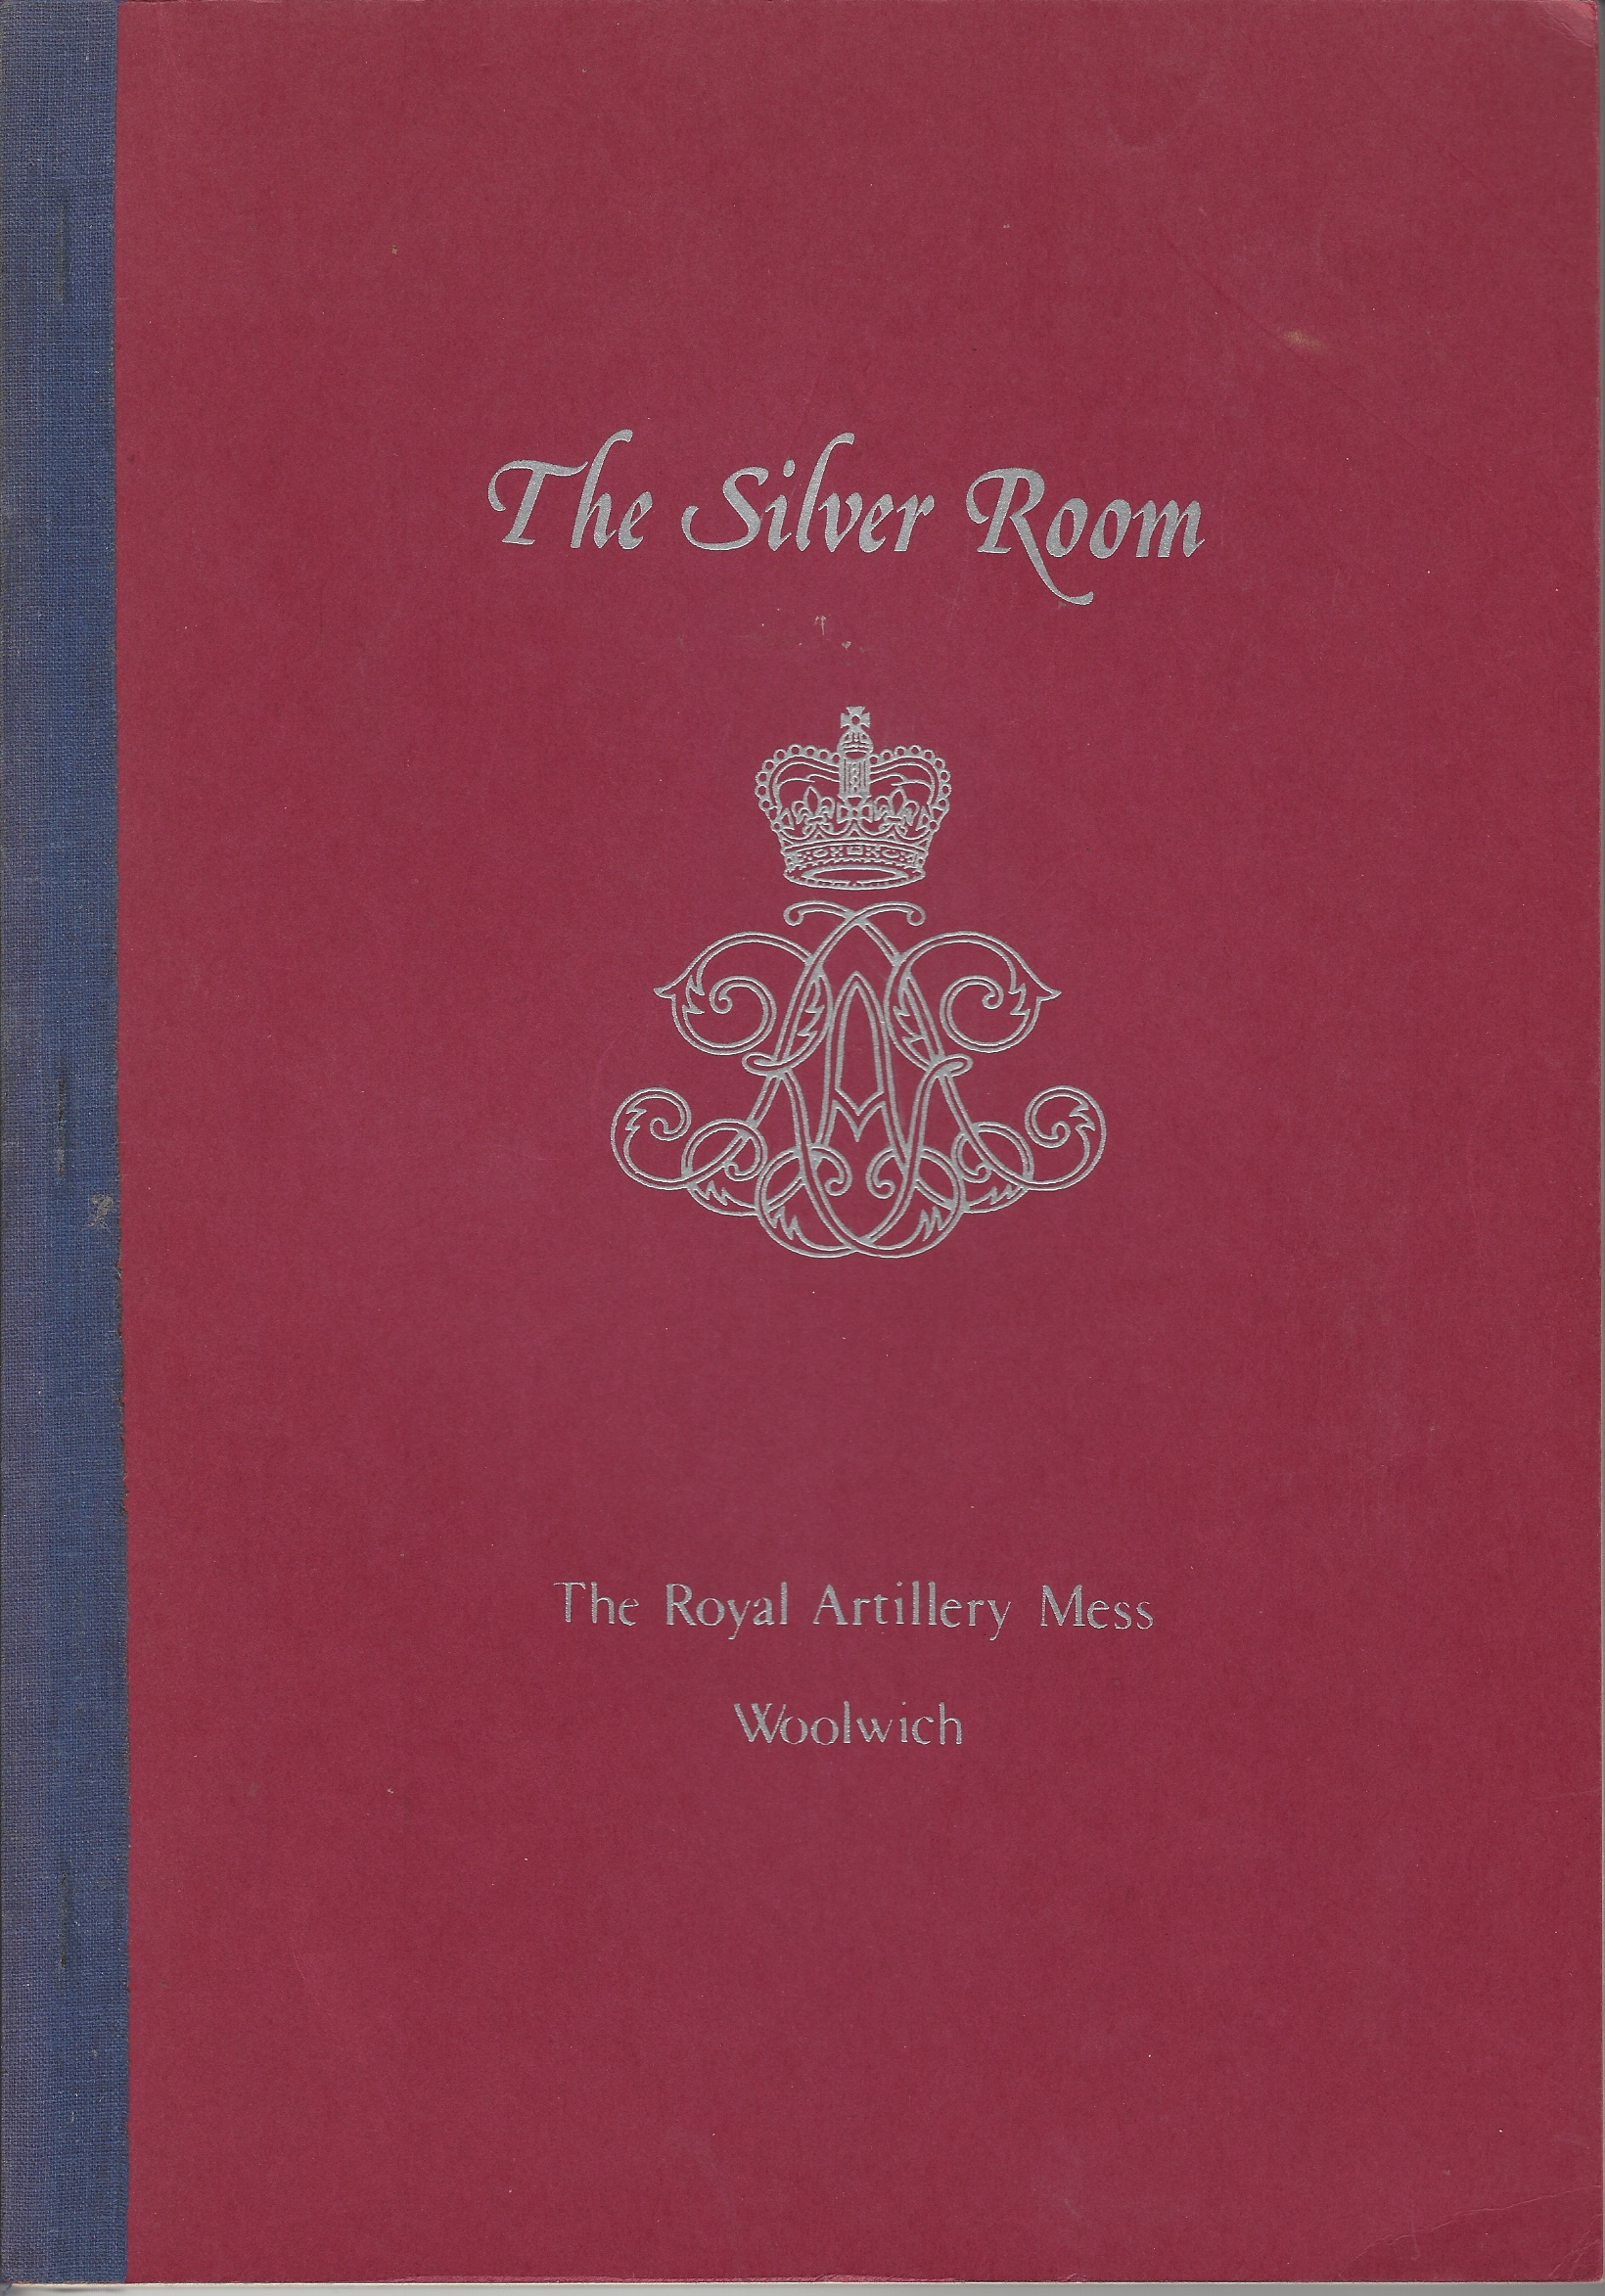 Image for The Silver Room, the Royal Artillery Mess, Woolwich